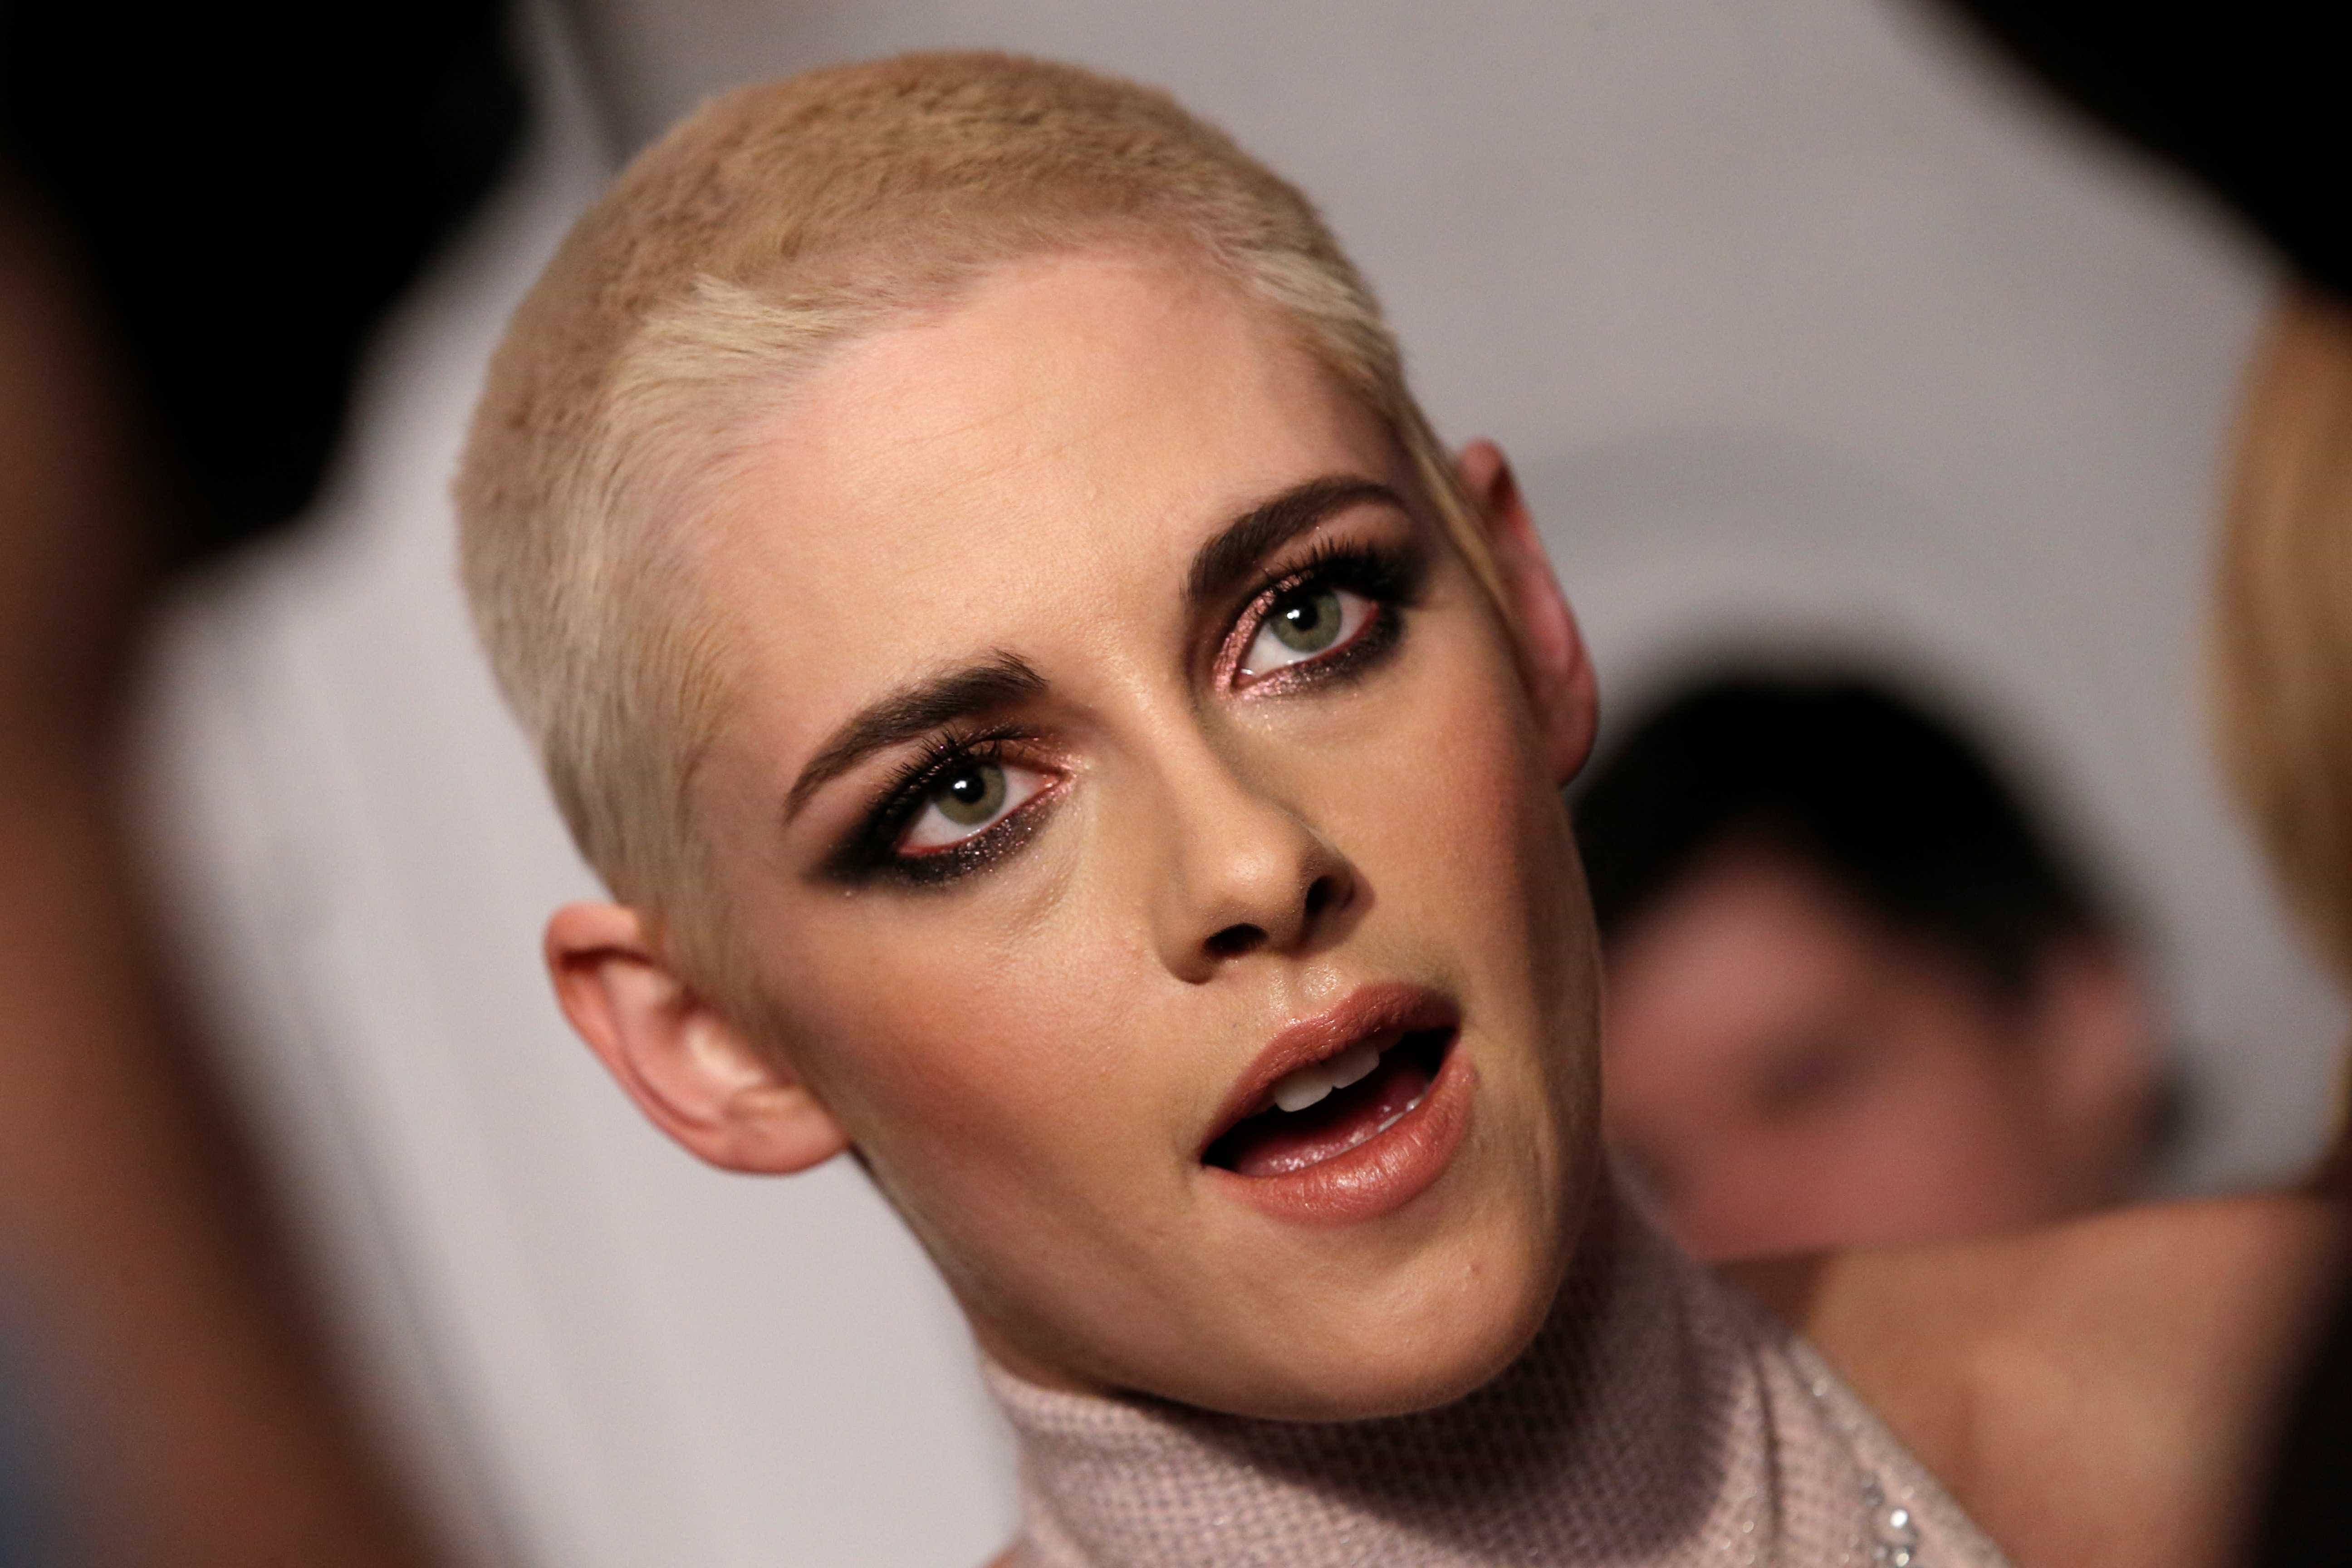 Remake de 'As Panteras' terá Kristen Stewart no elenco